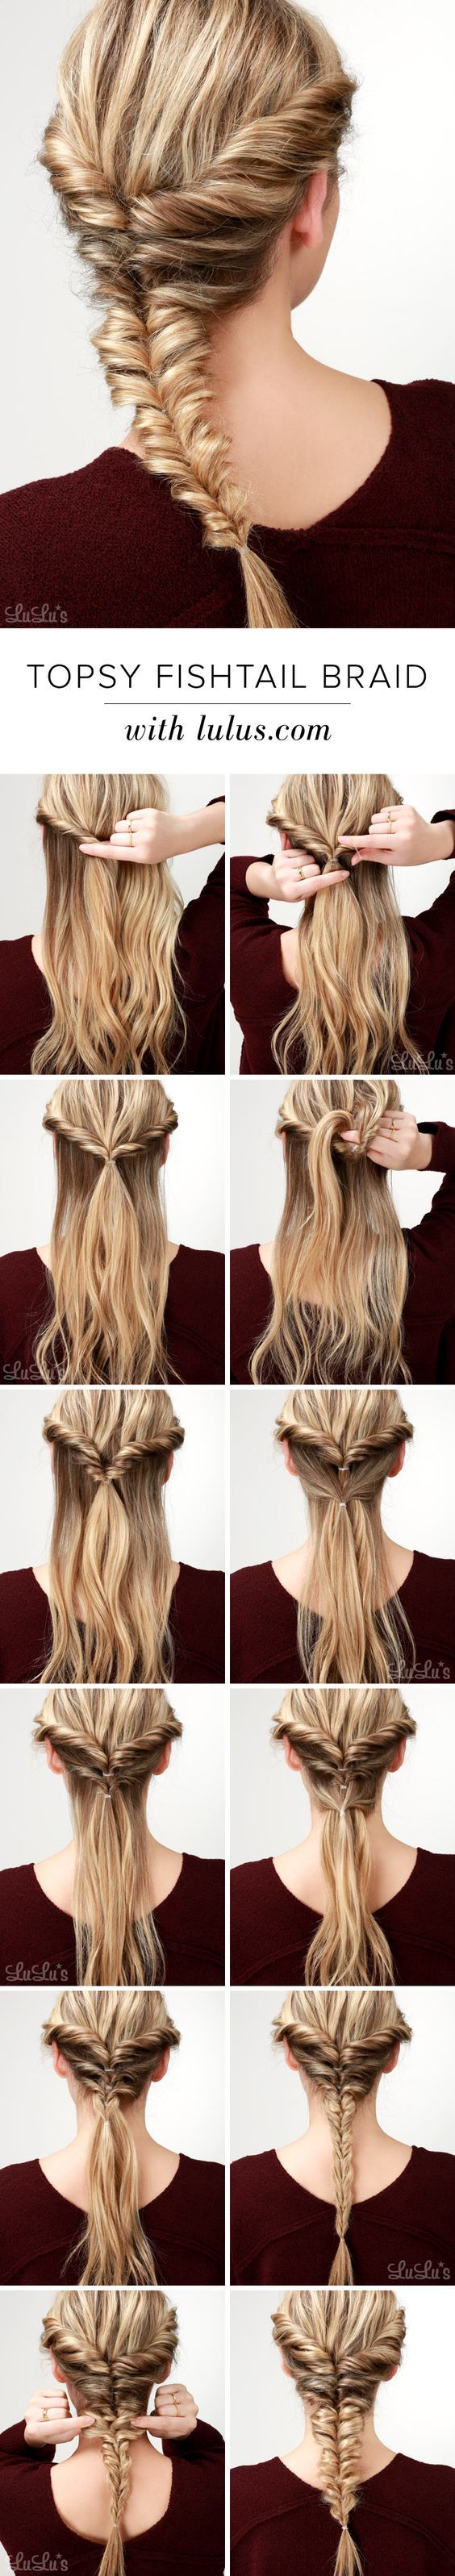 Lulus How-To: Topsy Fishtail Braid Tutorial